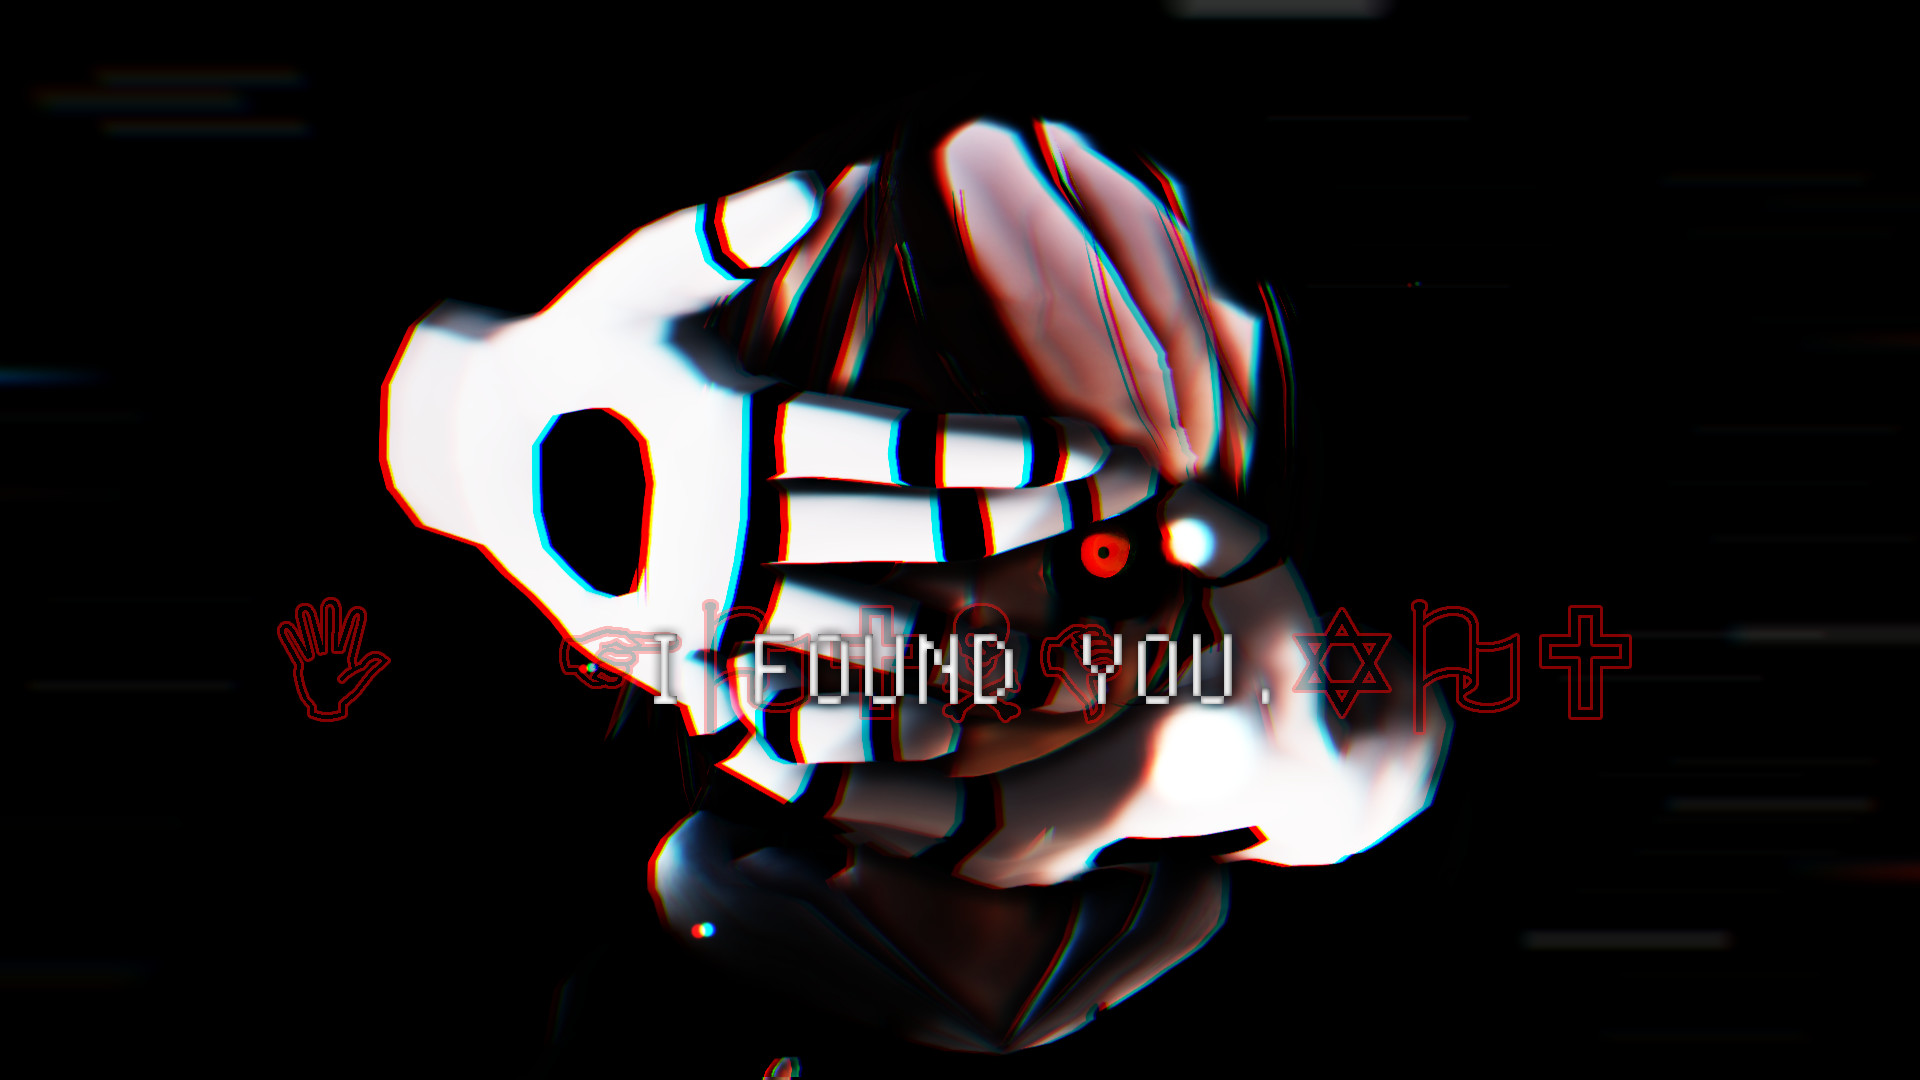 1920x1080 I FOUND YOU ( UNDERTALE) W.D GASTER and Mi' by Cirthiel on .